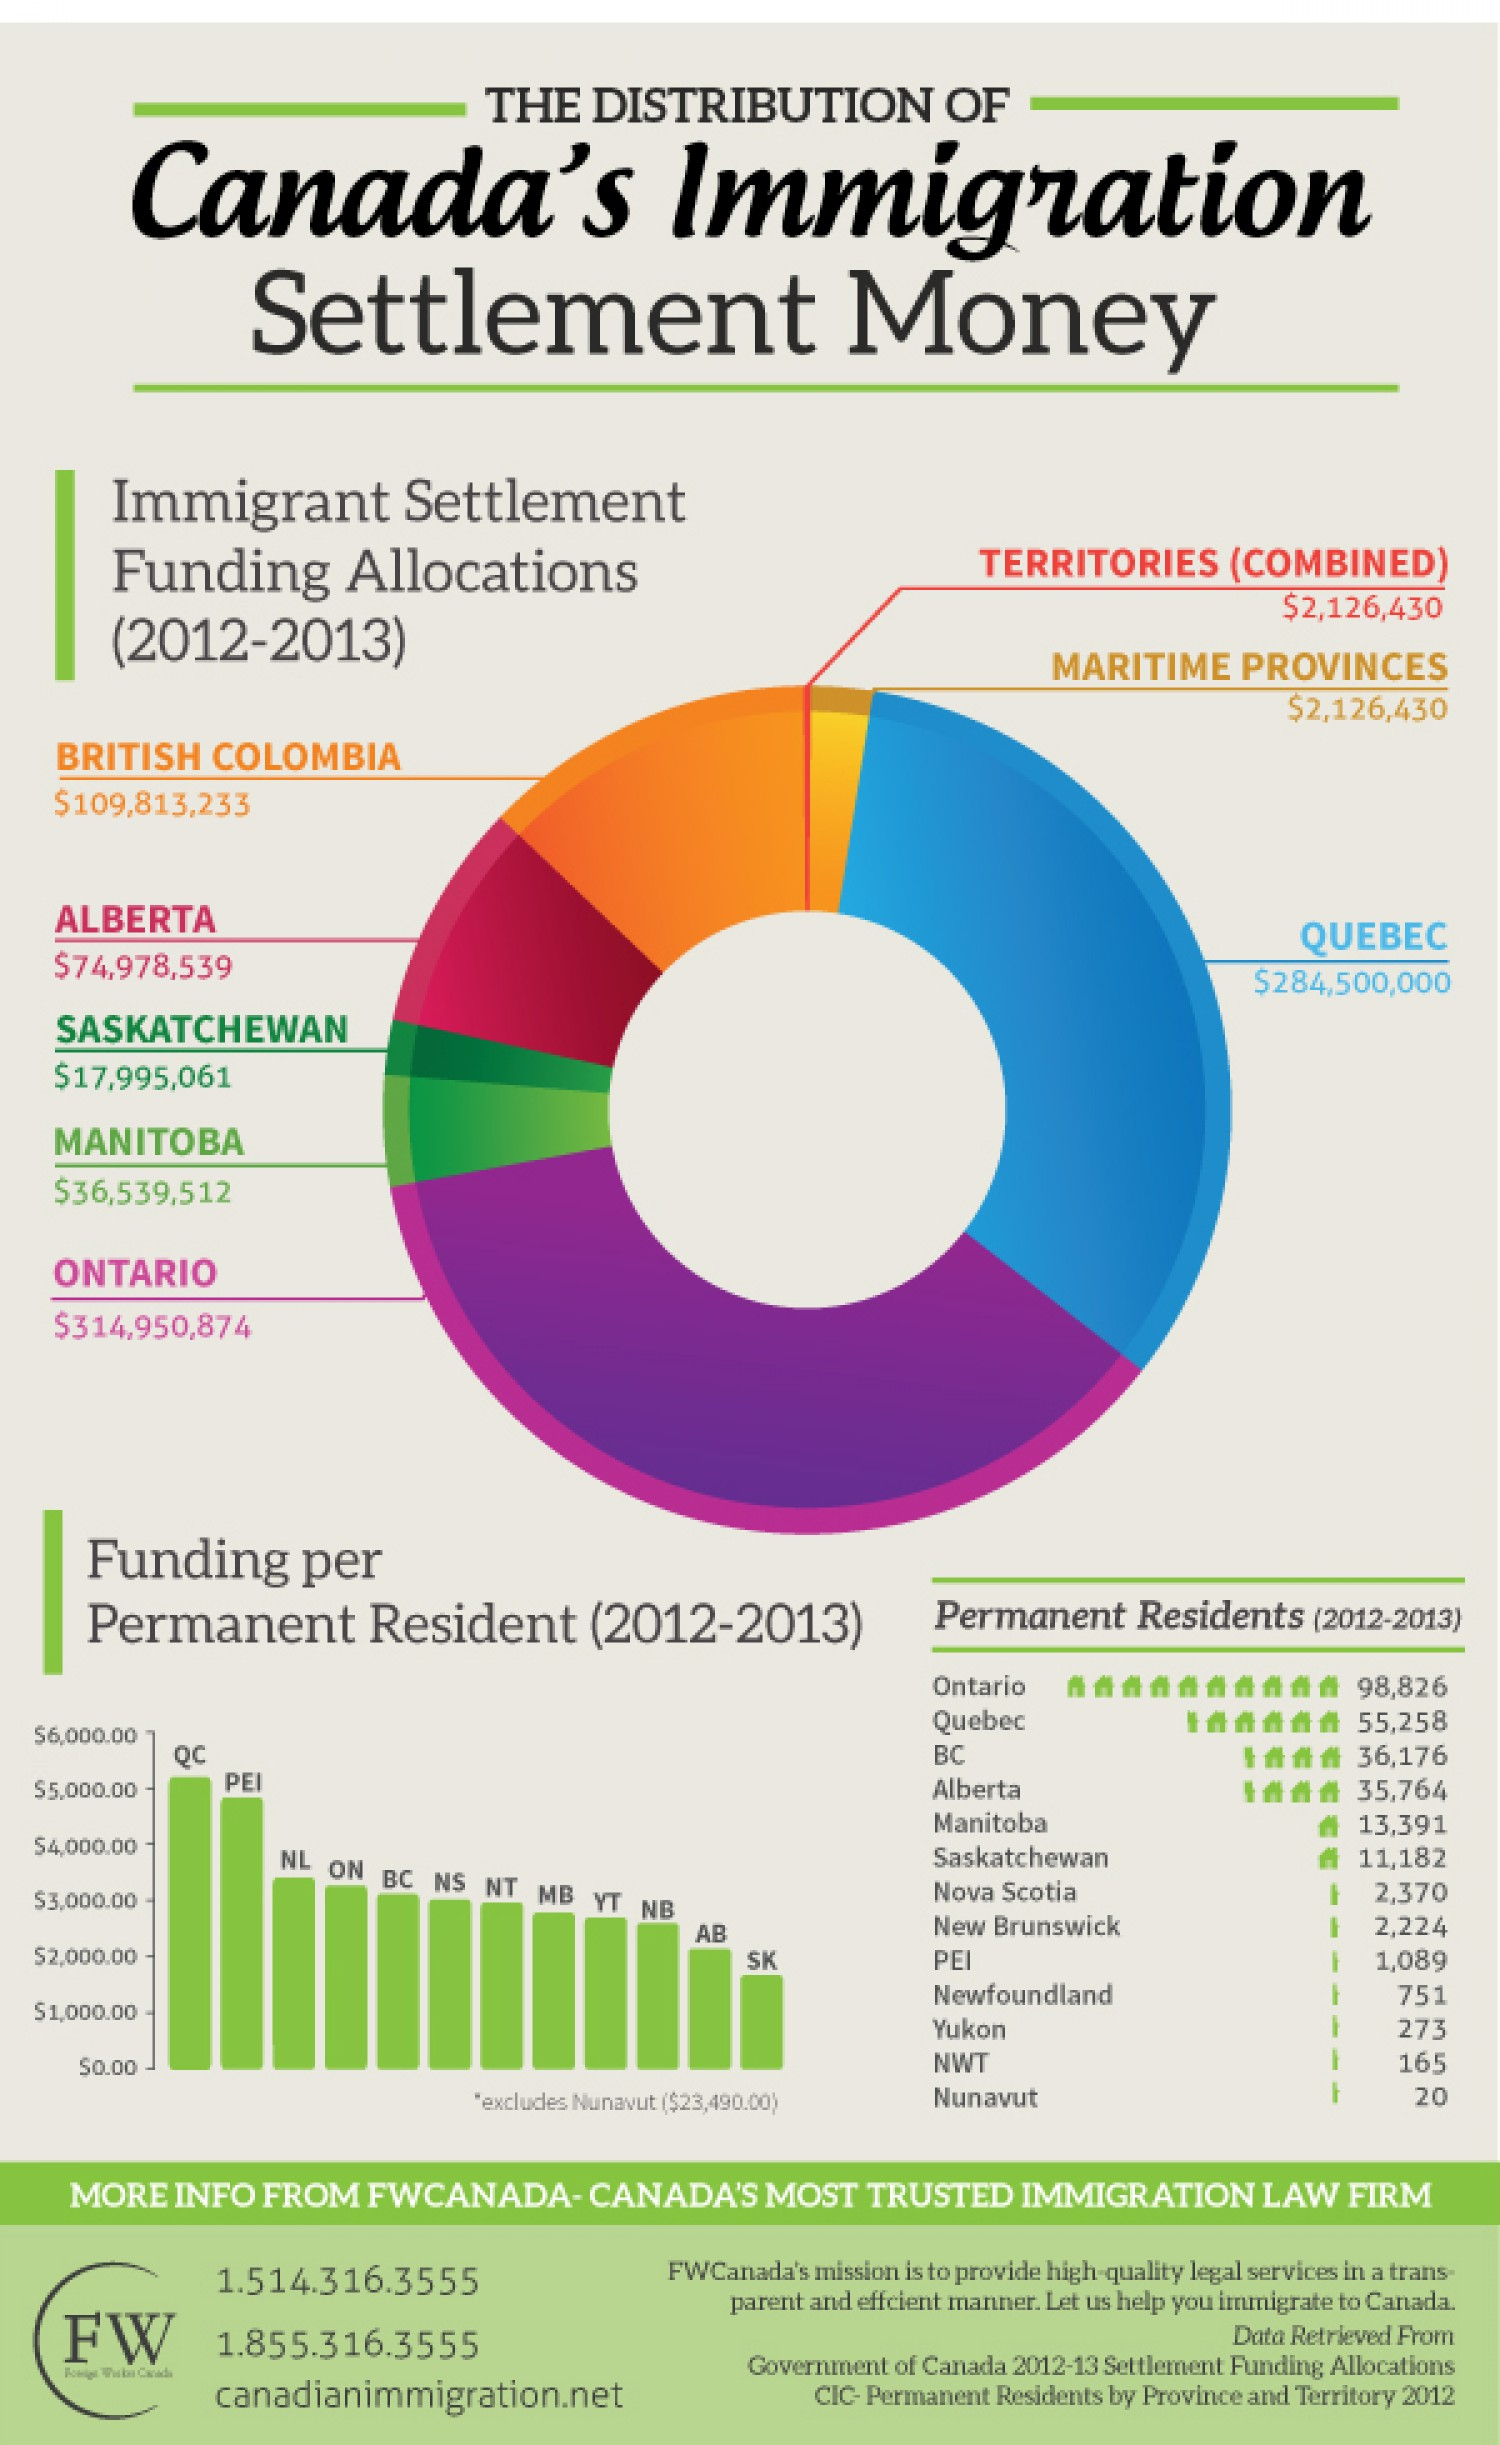 19. The Distribution of Canada's Immigration Settlement Money